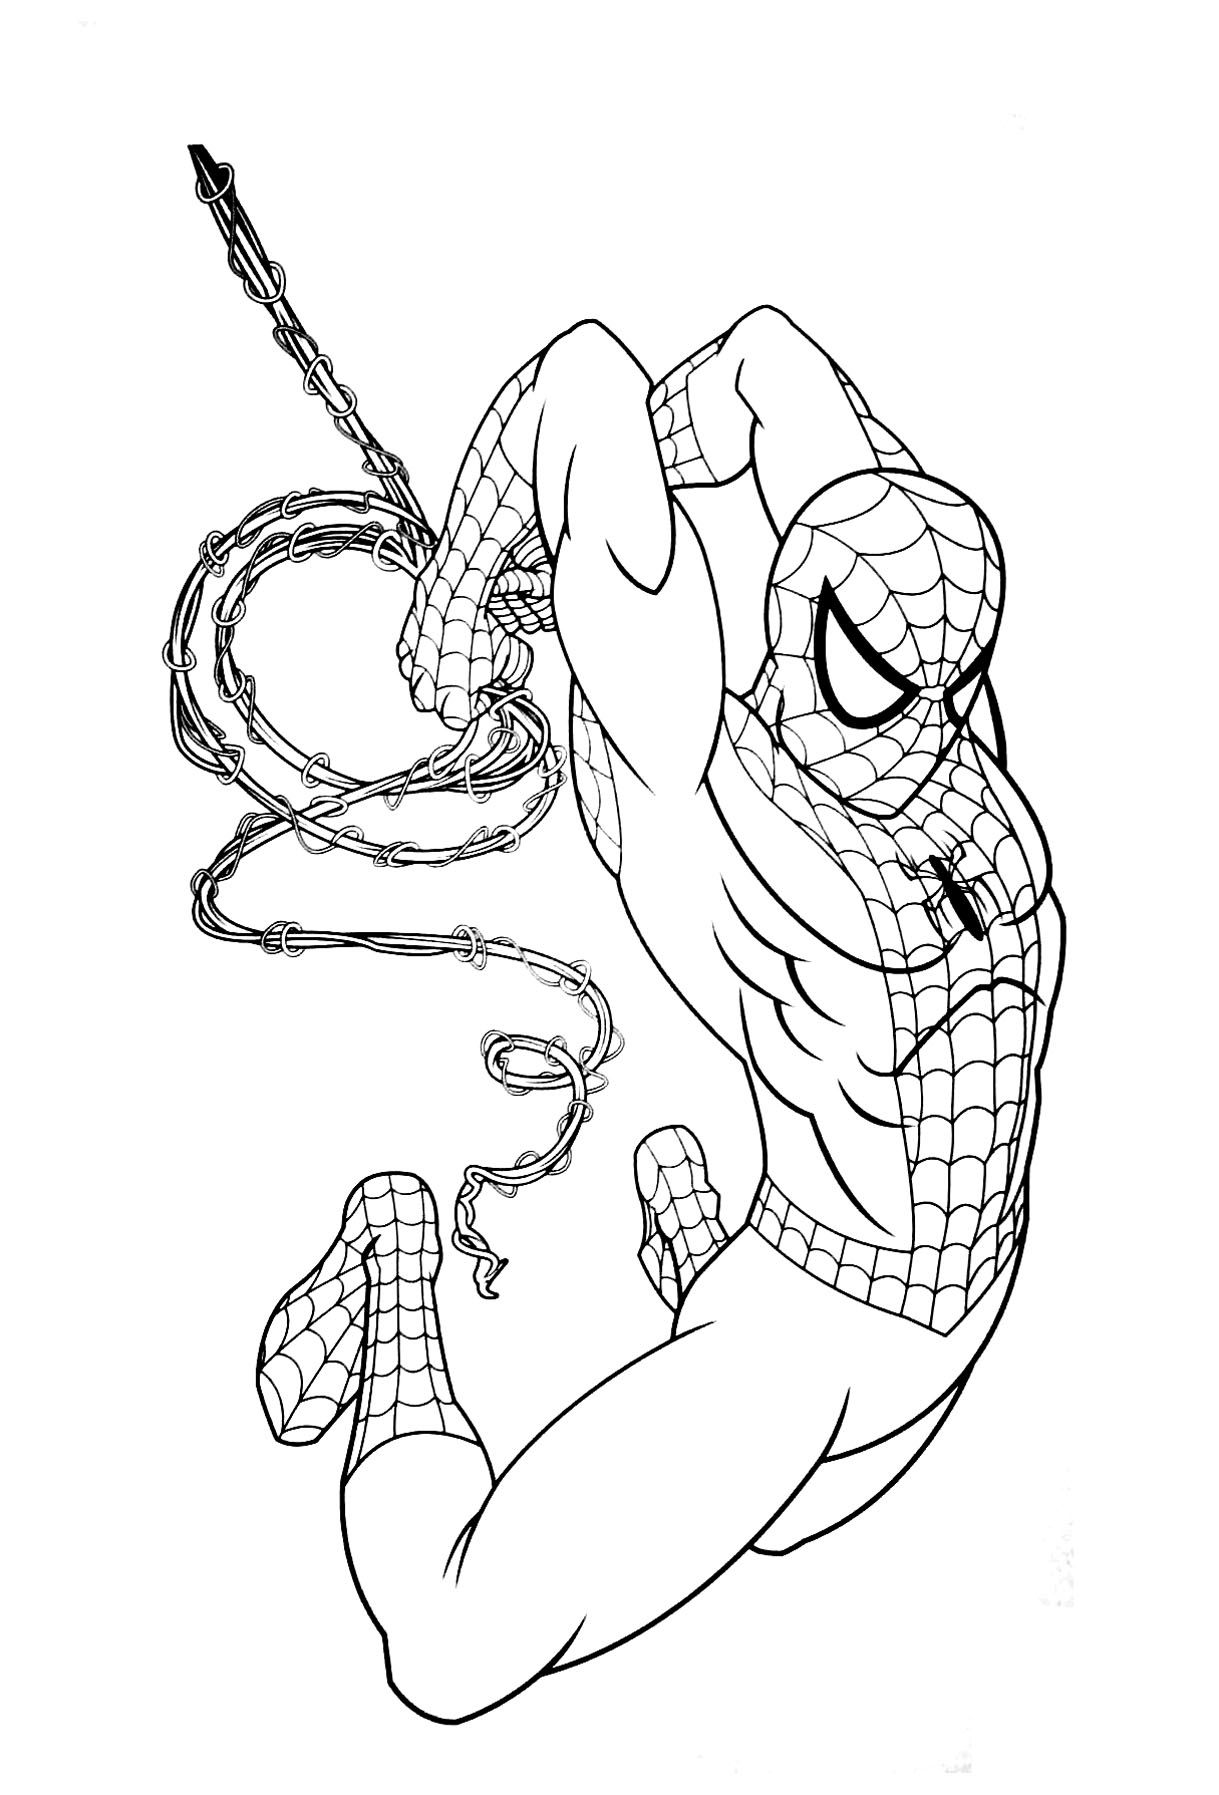 - Pin By Marcellous Green On Coloring Pages (With Images) Avengers